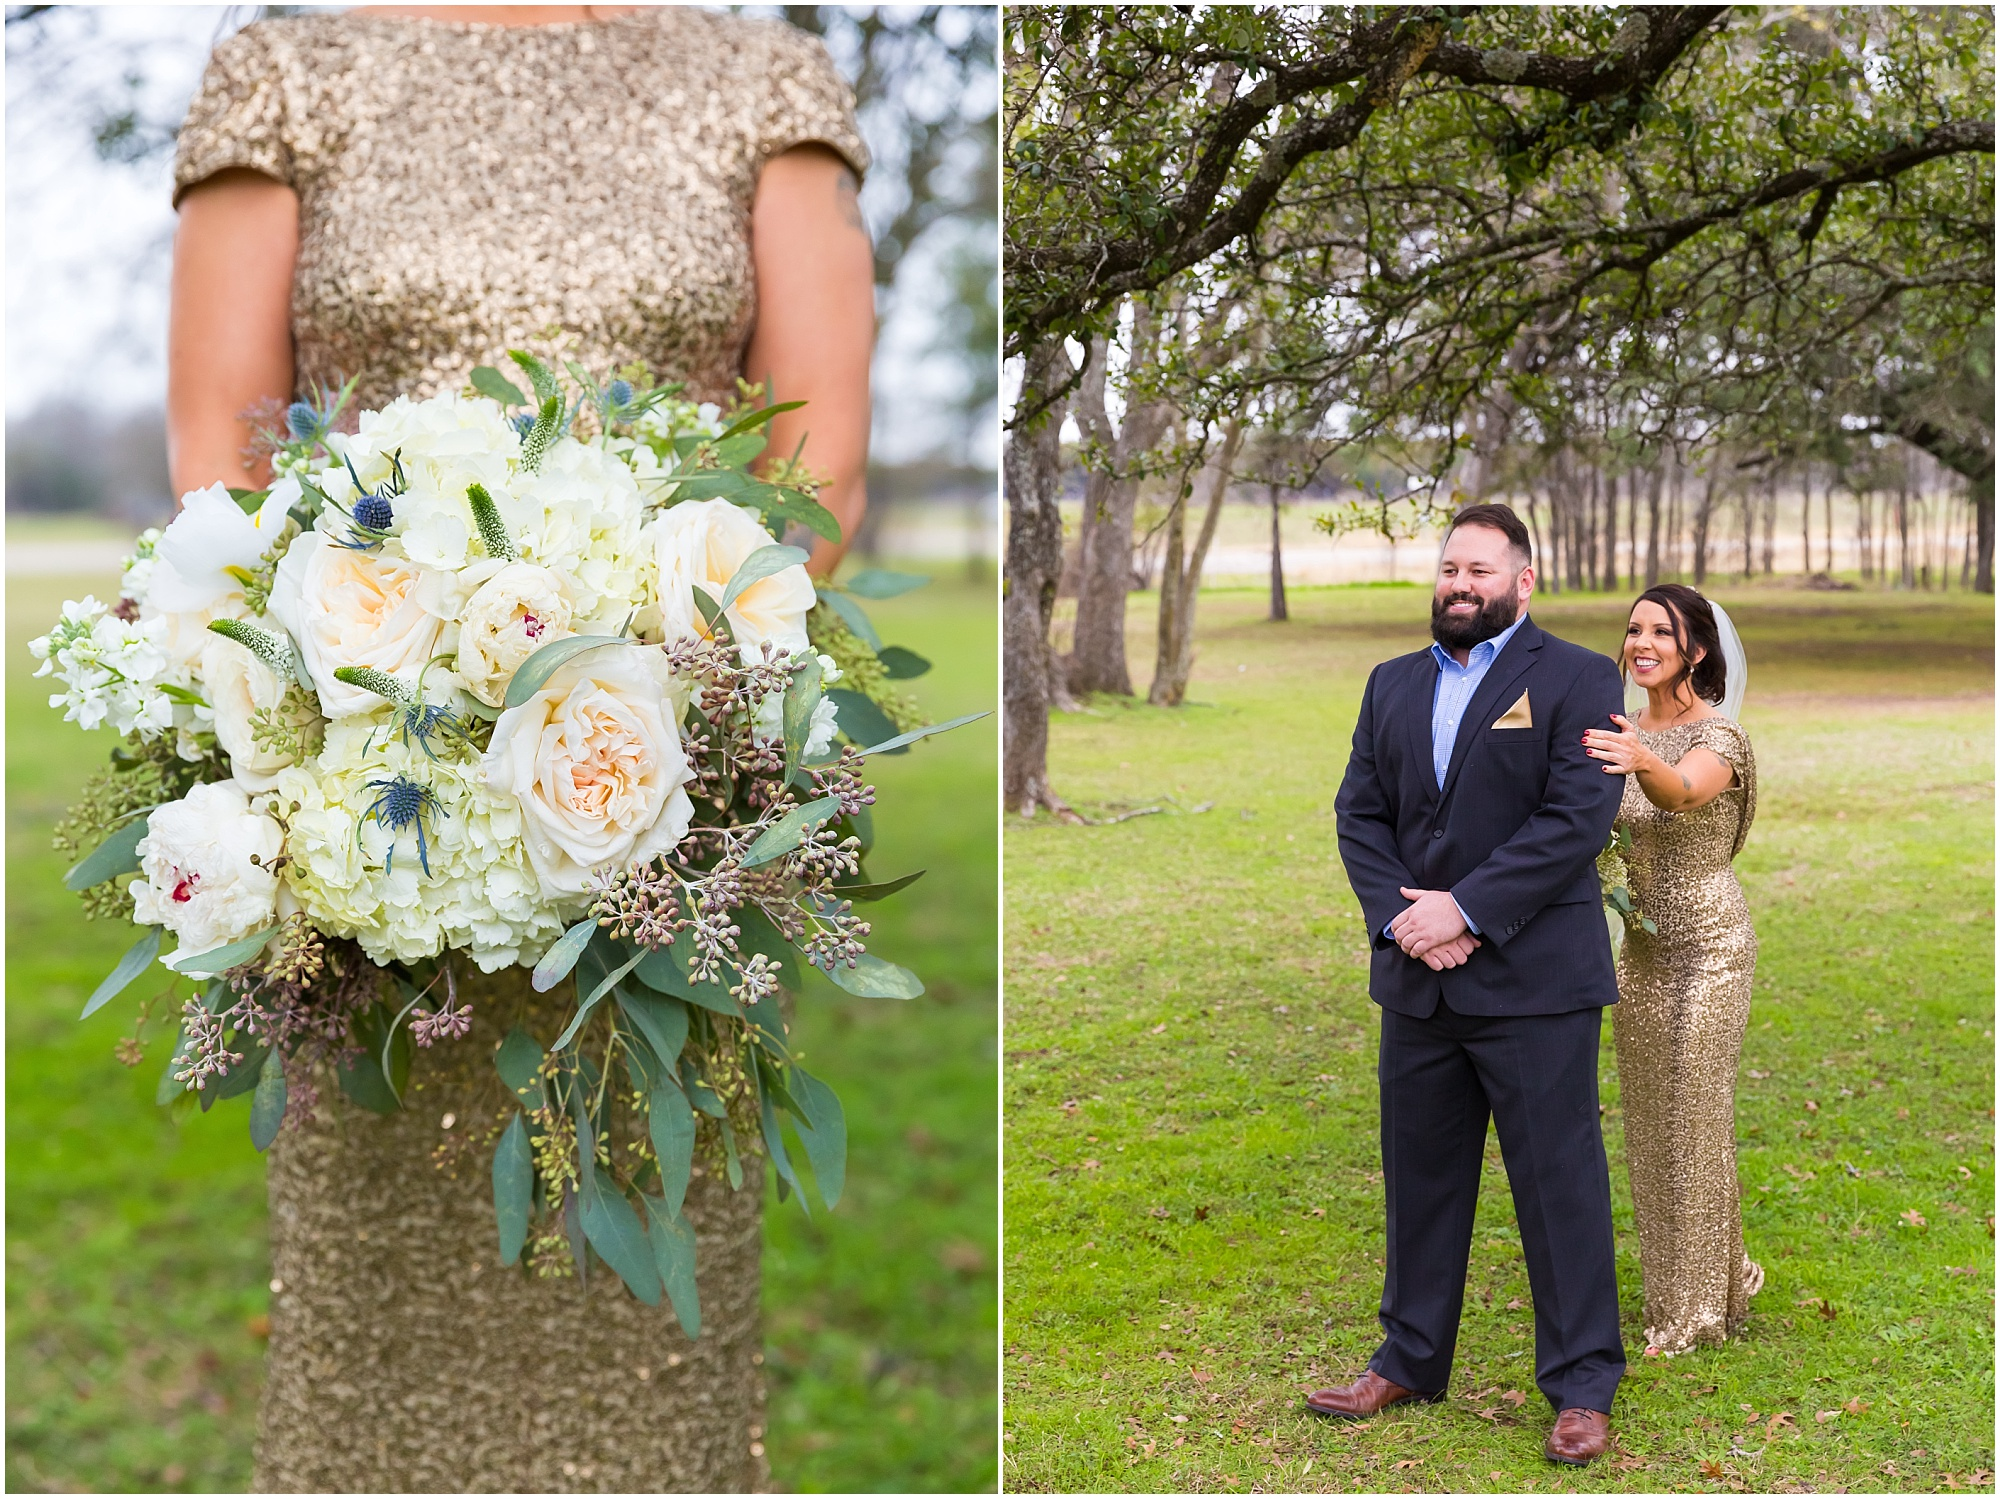 Winter-Elopement-Waco-Texas_0003.jpg